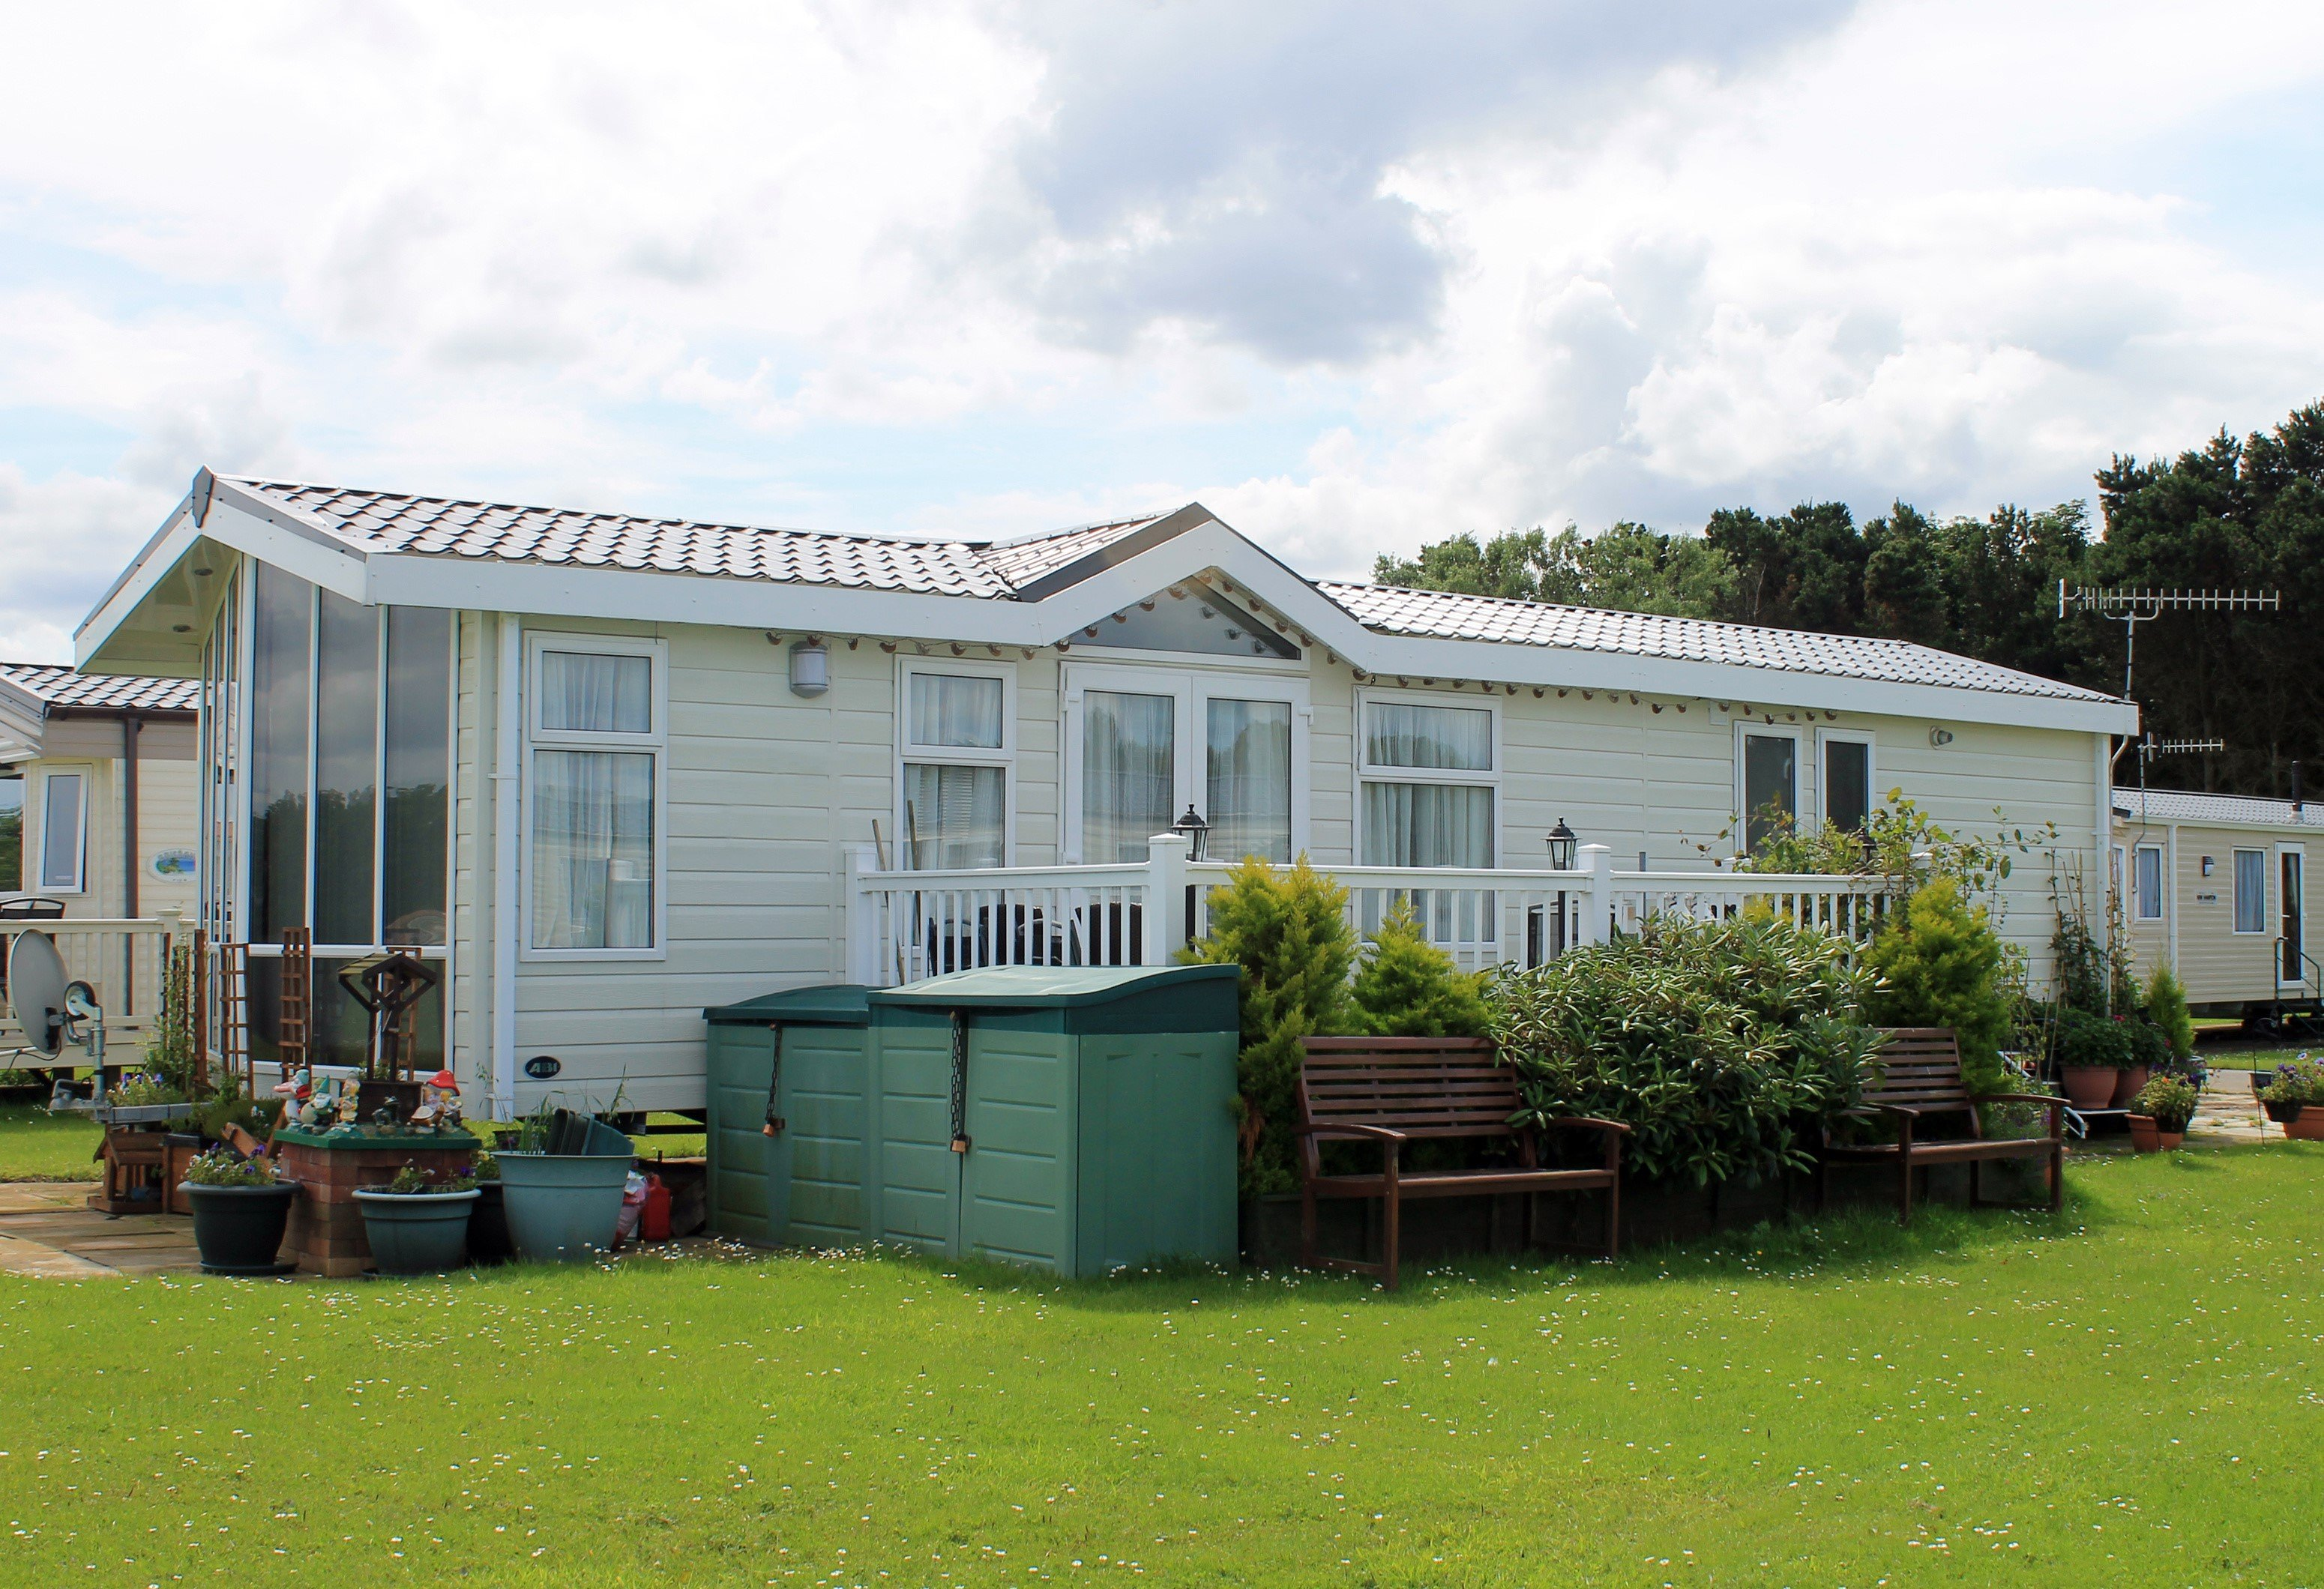 There are many manufactured home communities around Texas. These mobile home parks offer low maintenance housing.